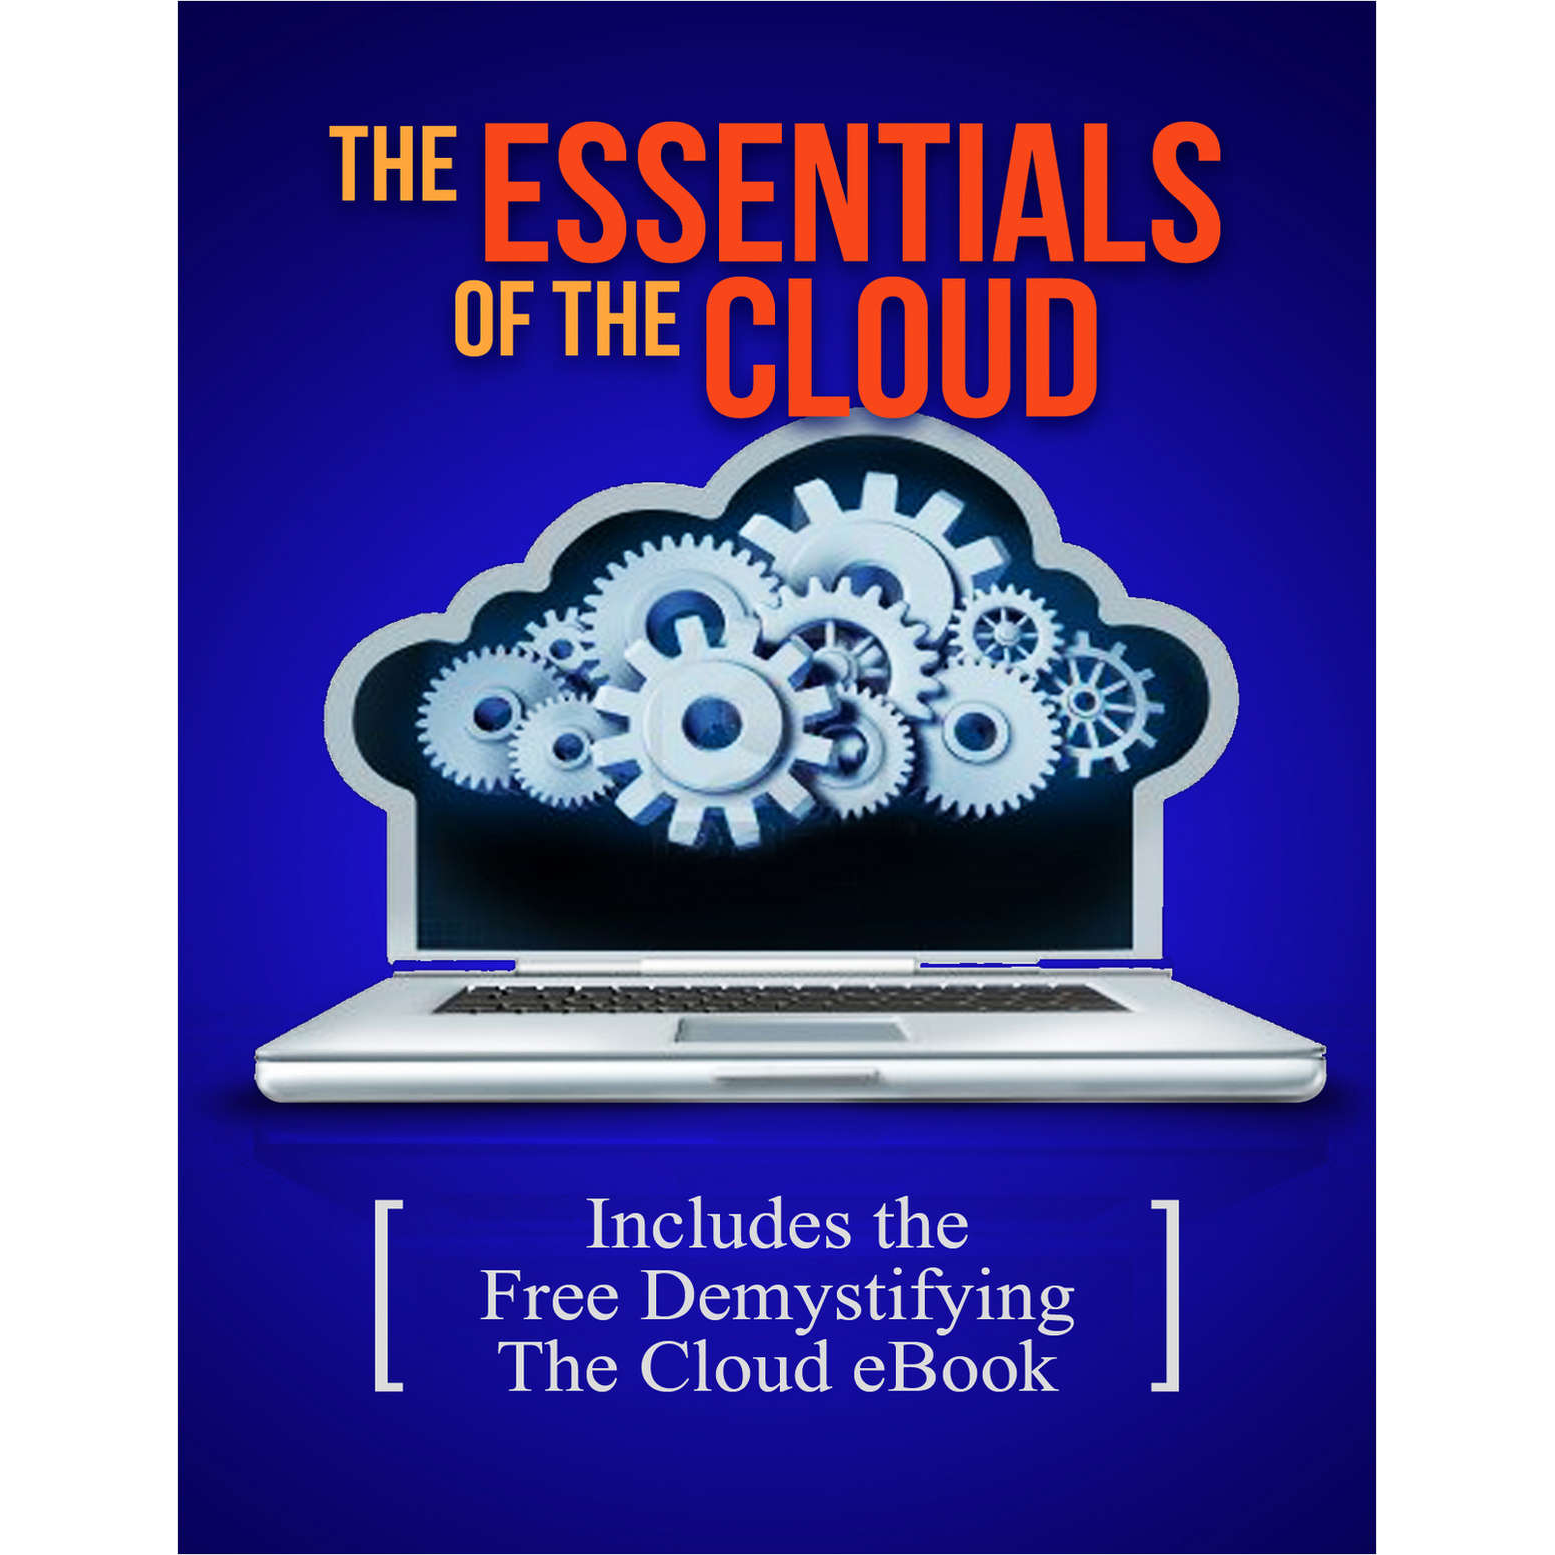 The Essentials of the Cloud - Includes the Free Demystifying The Cloud eBook Screenshot